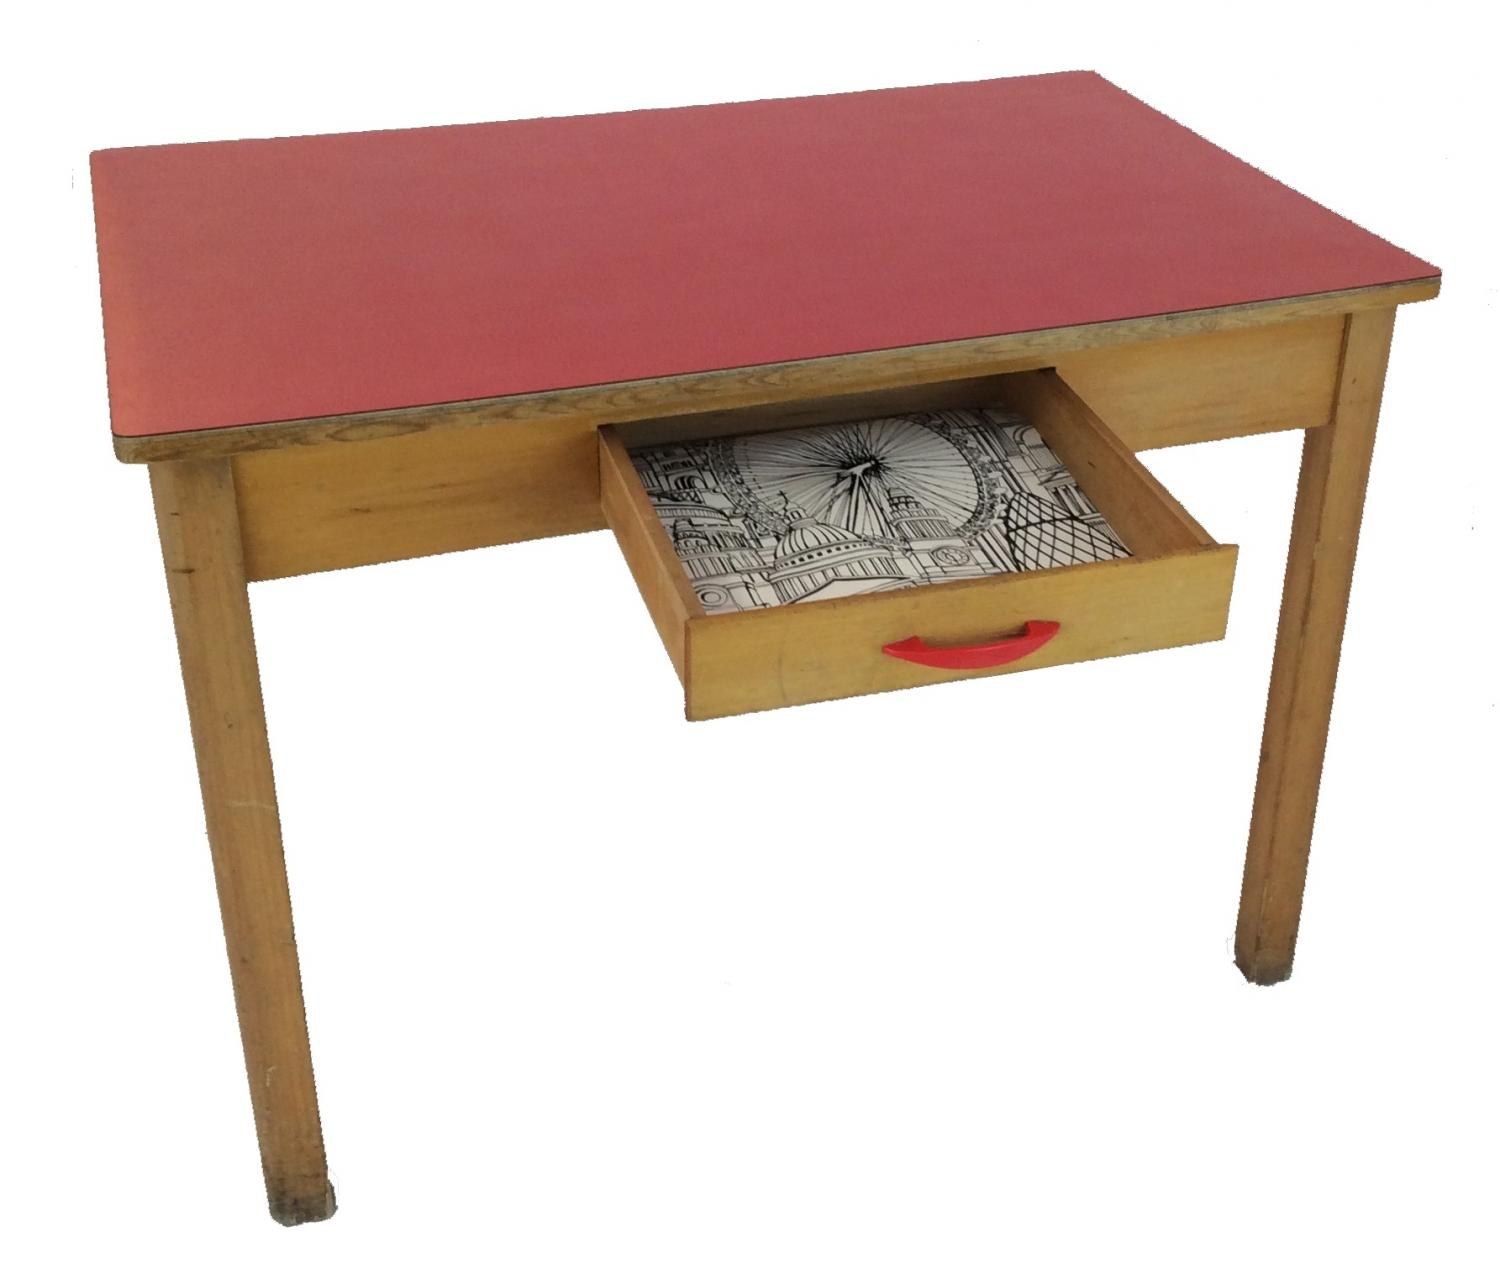 Retro red formica table in sold recently - Retro formica table ...